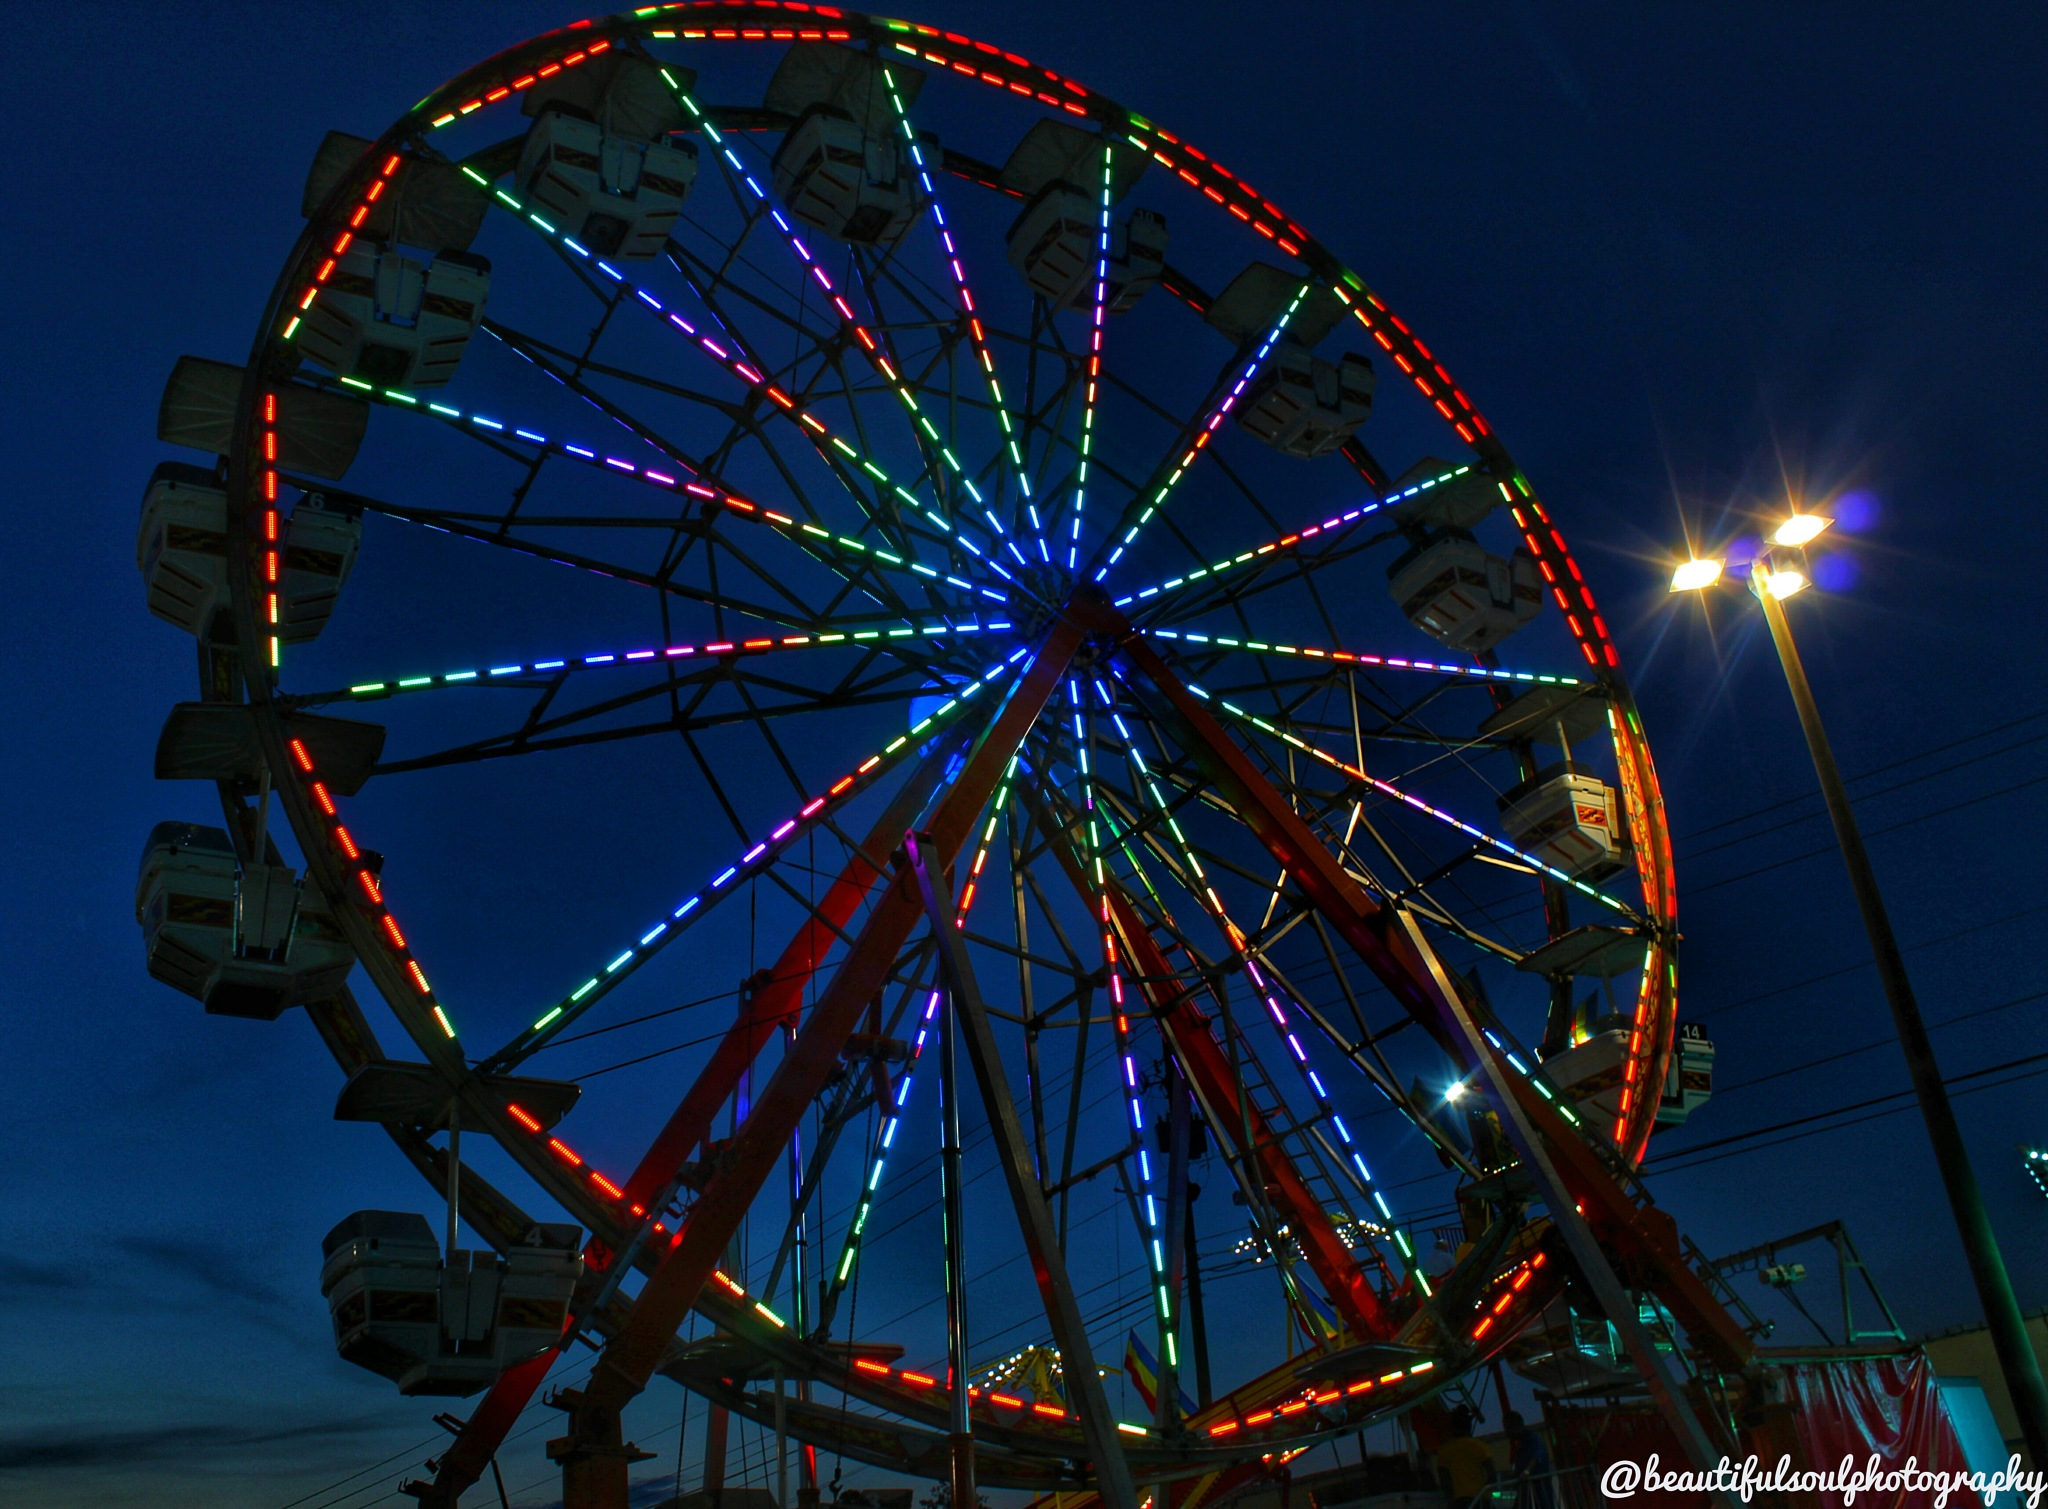 Smryna Fair by BeautifulSoul22